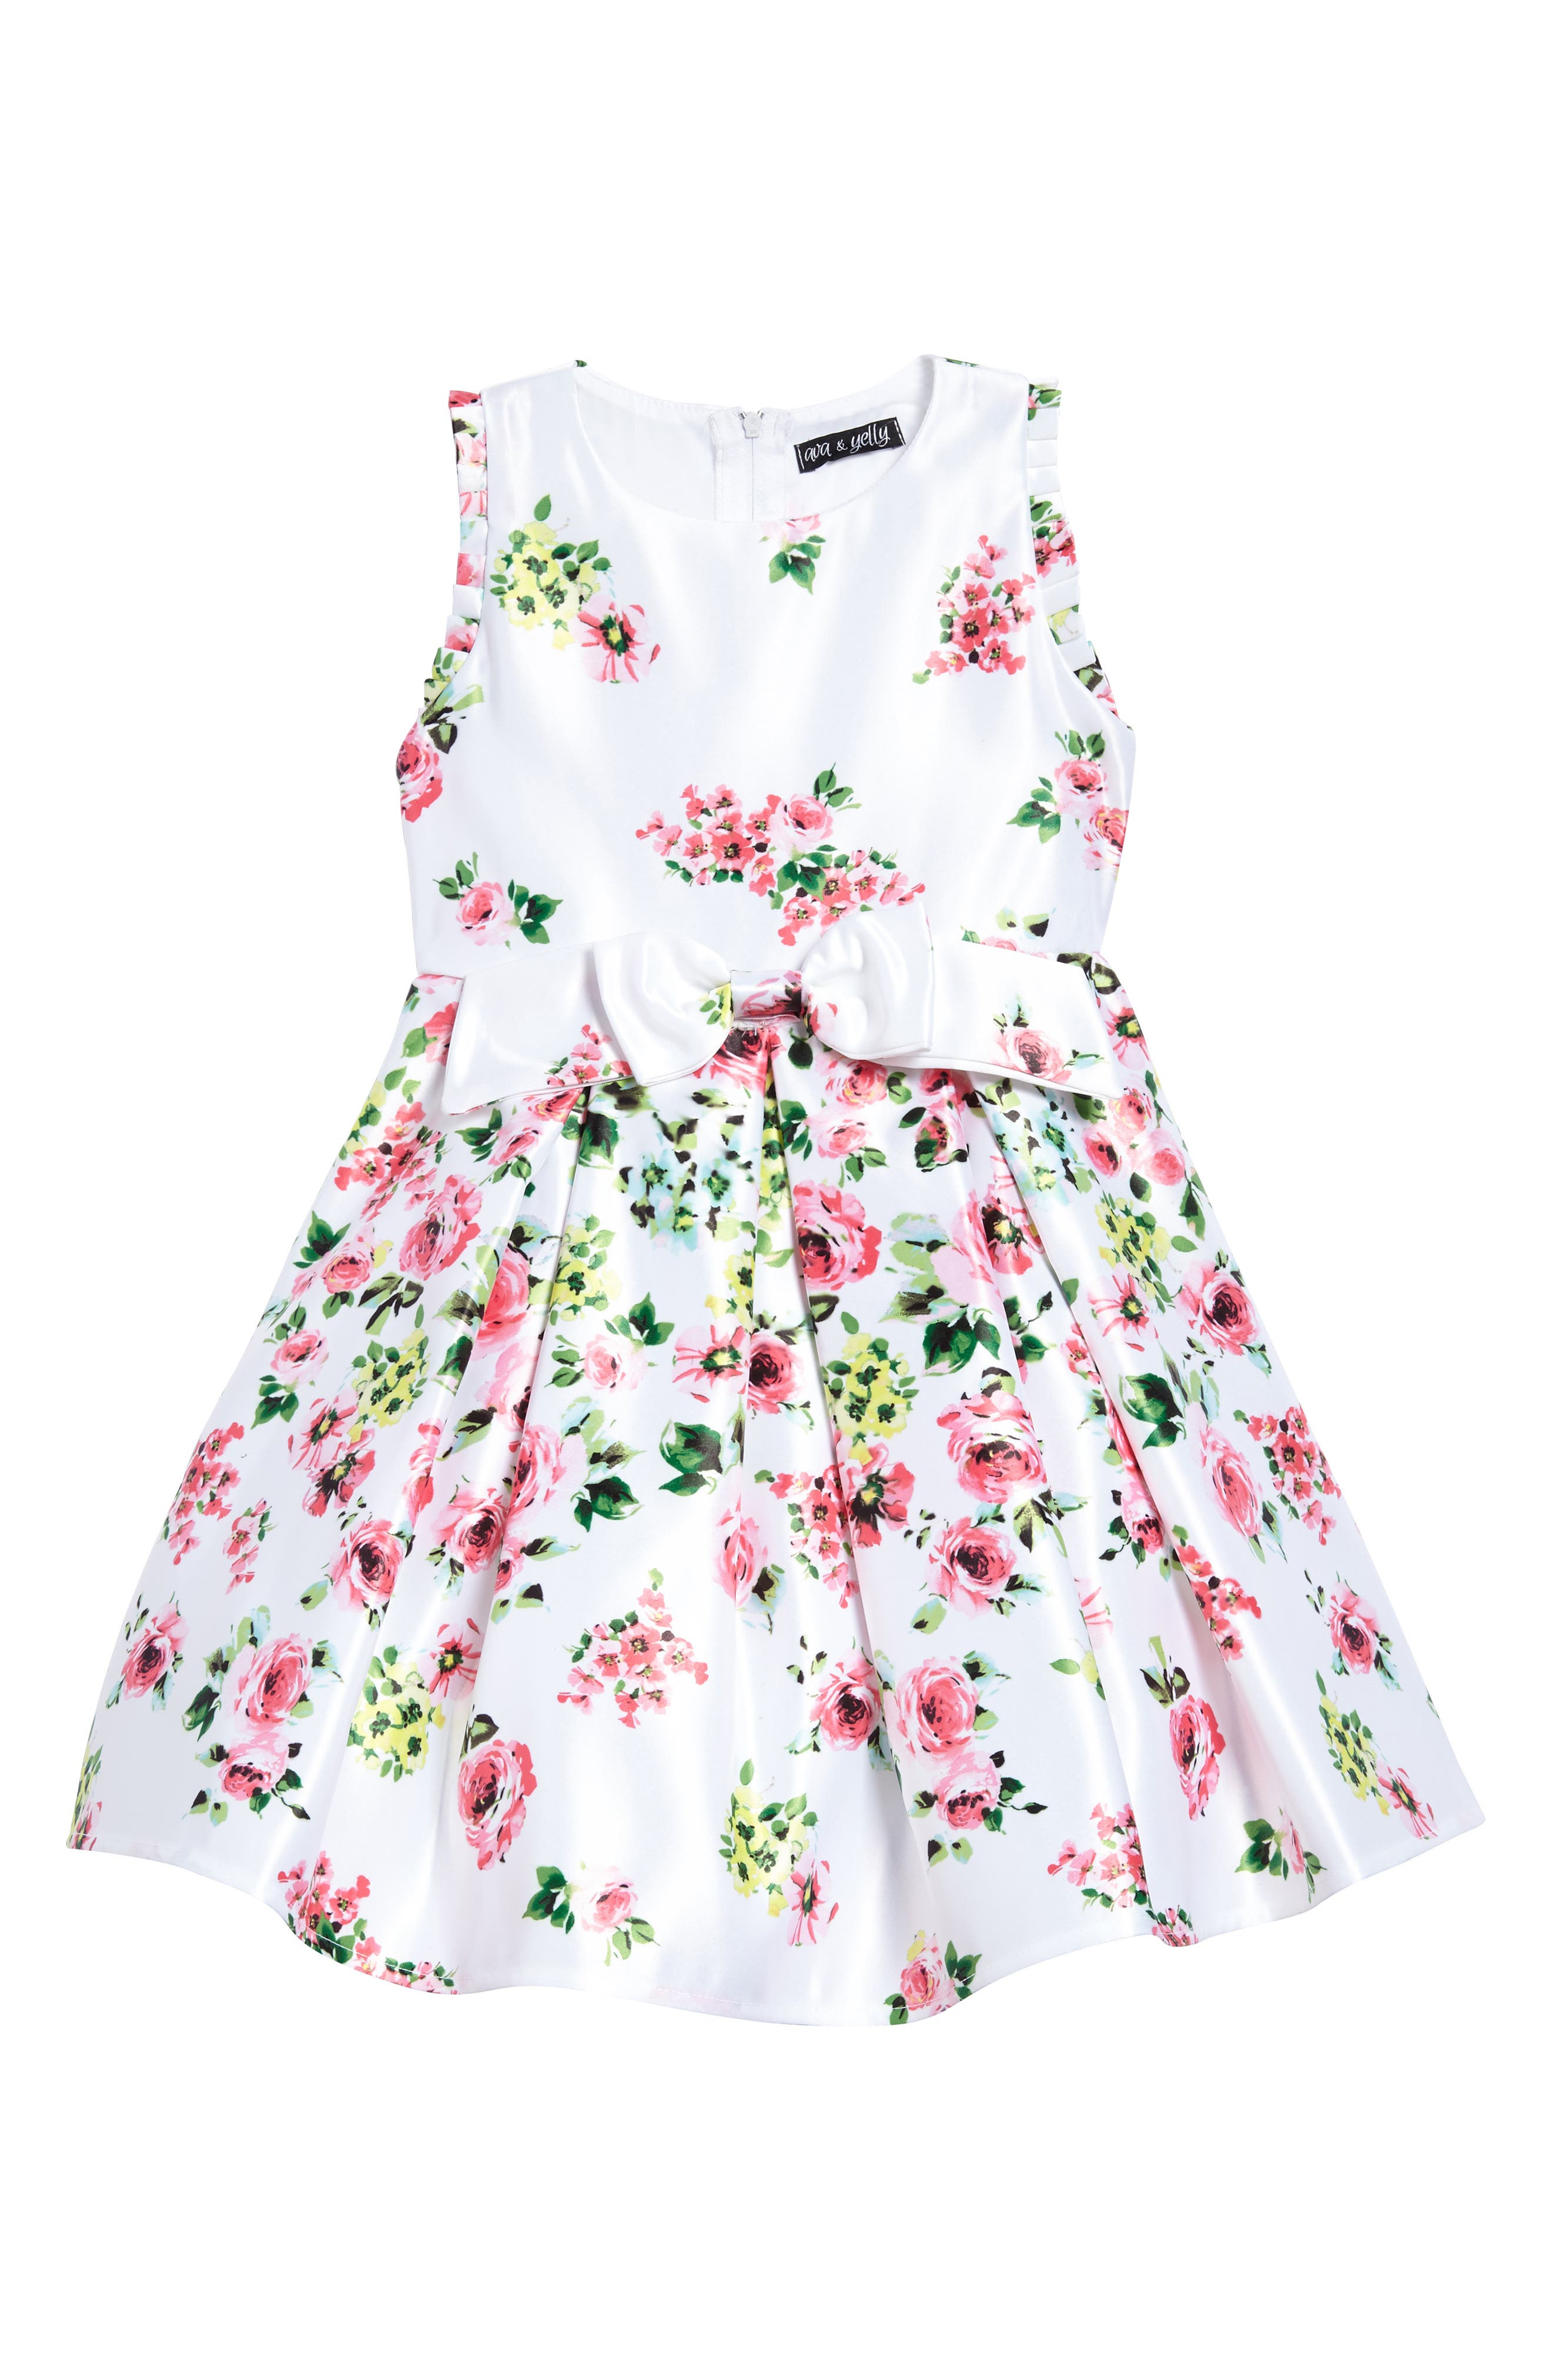 Main Image - Ava & Yelly Floral Bow Front Dress (Toddler Girls & Little Girls)